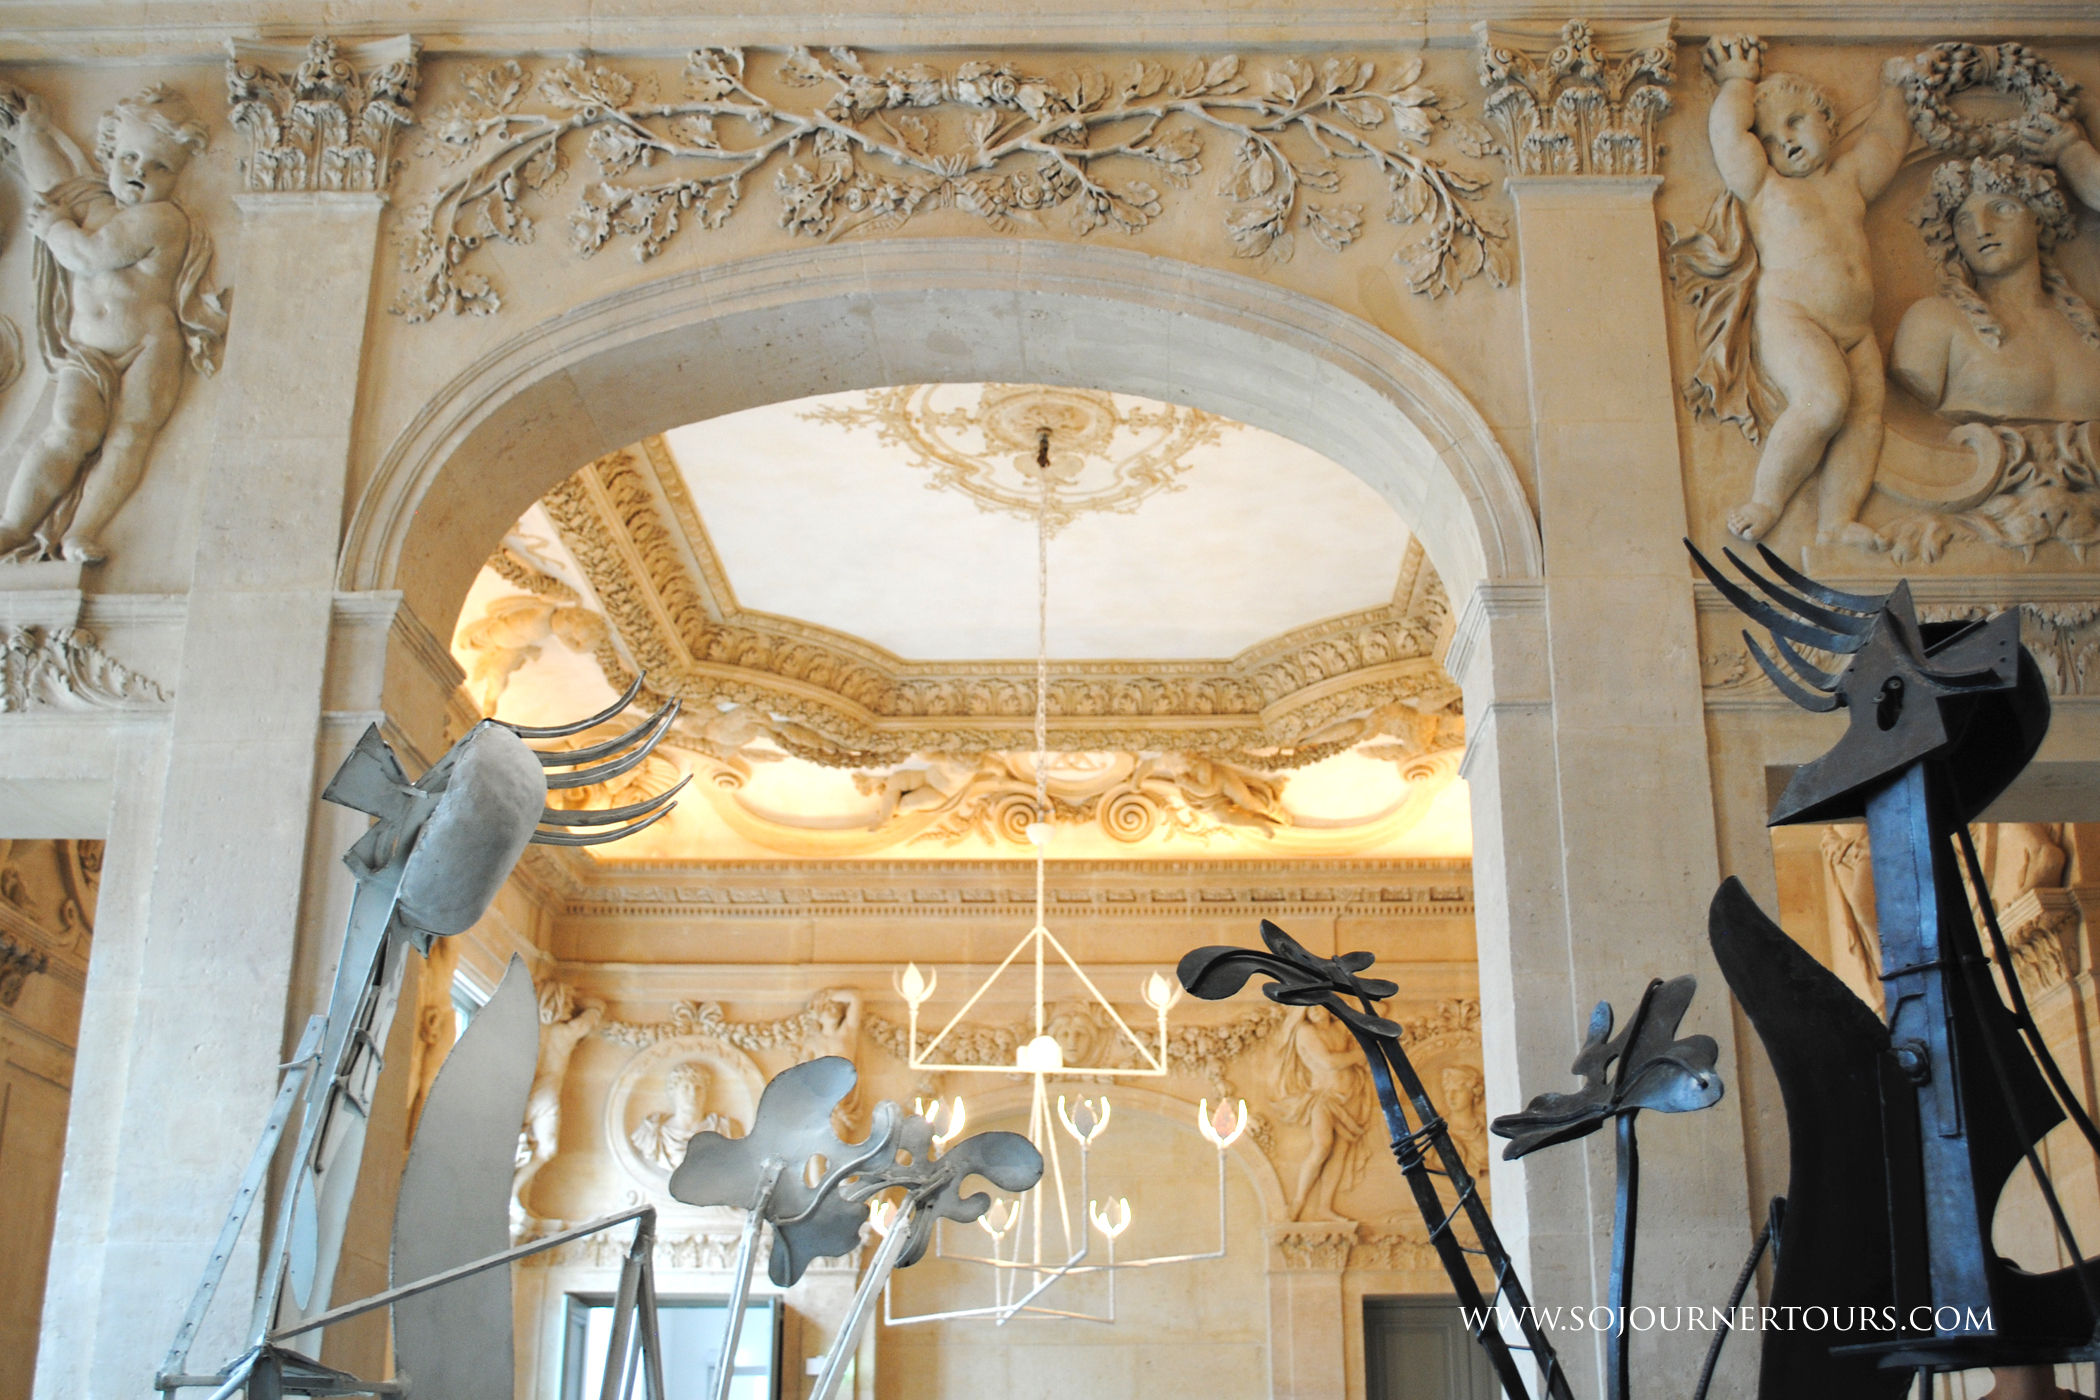 Sojourner Tours Visit to Picasso Museum